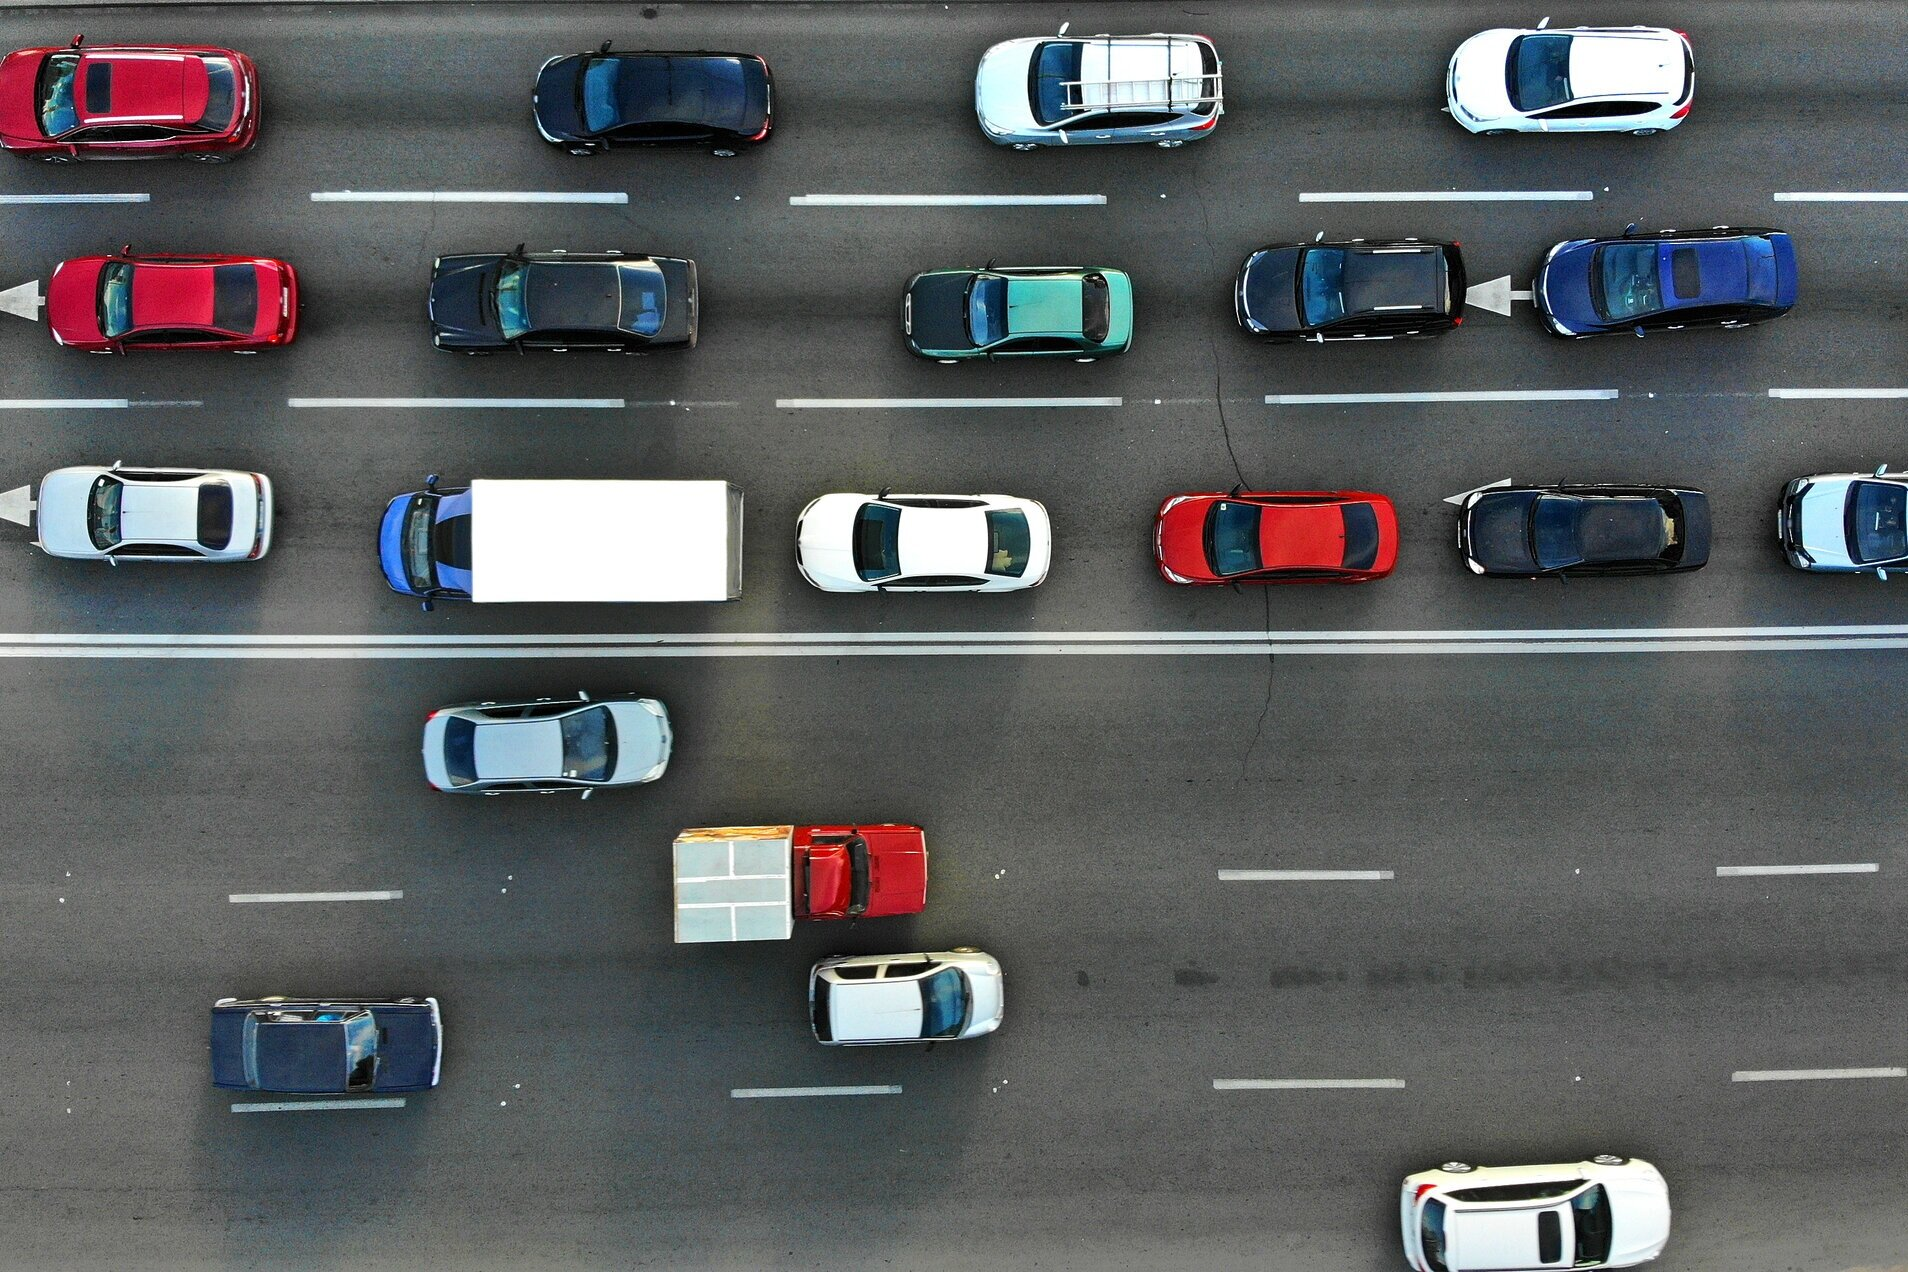 Smarter Analytics - Using AI powered video analytics to learn as much about the real time flow of traffic passing through a Smart City.